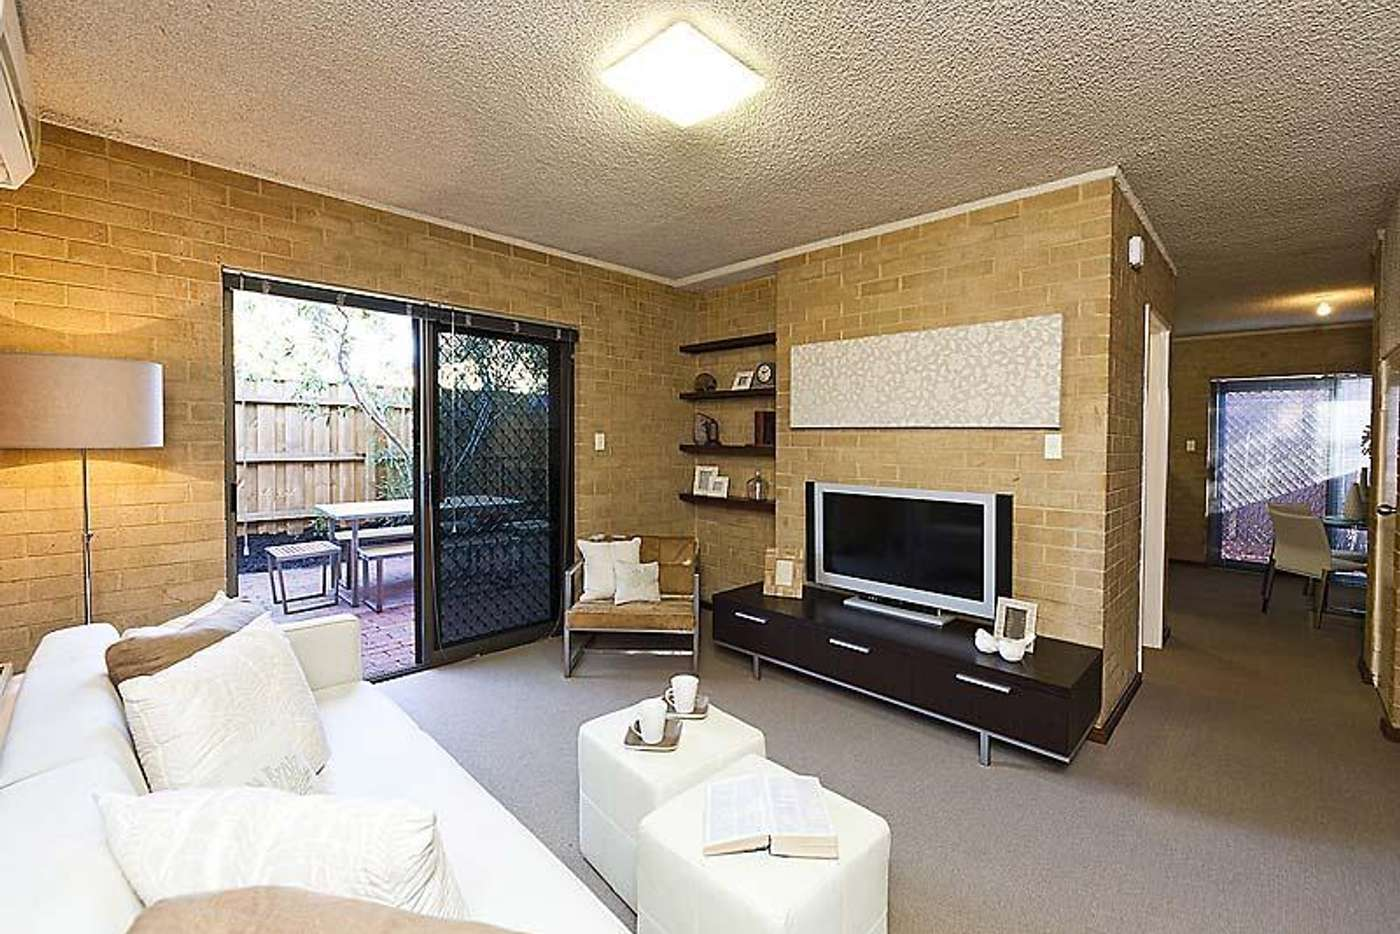 Main view of Homely townhouse listing, 6/14 Park Road, Crawley WA 6009